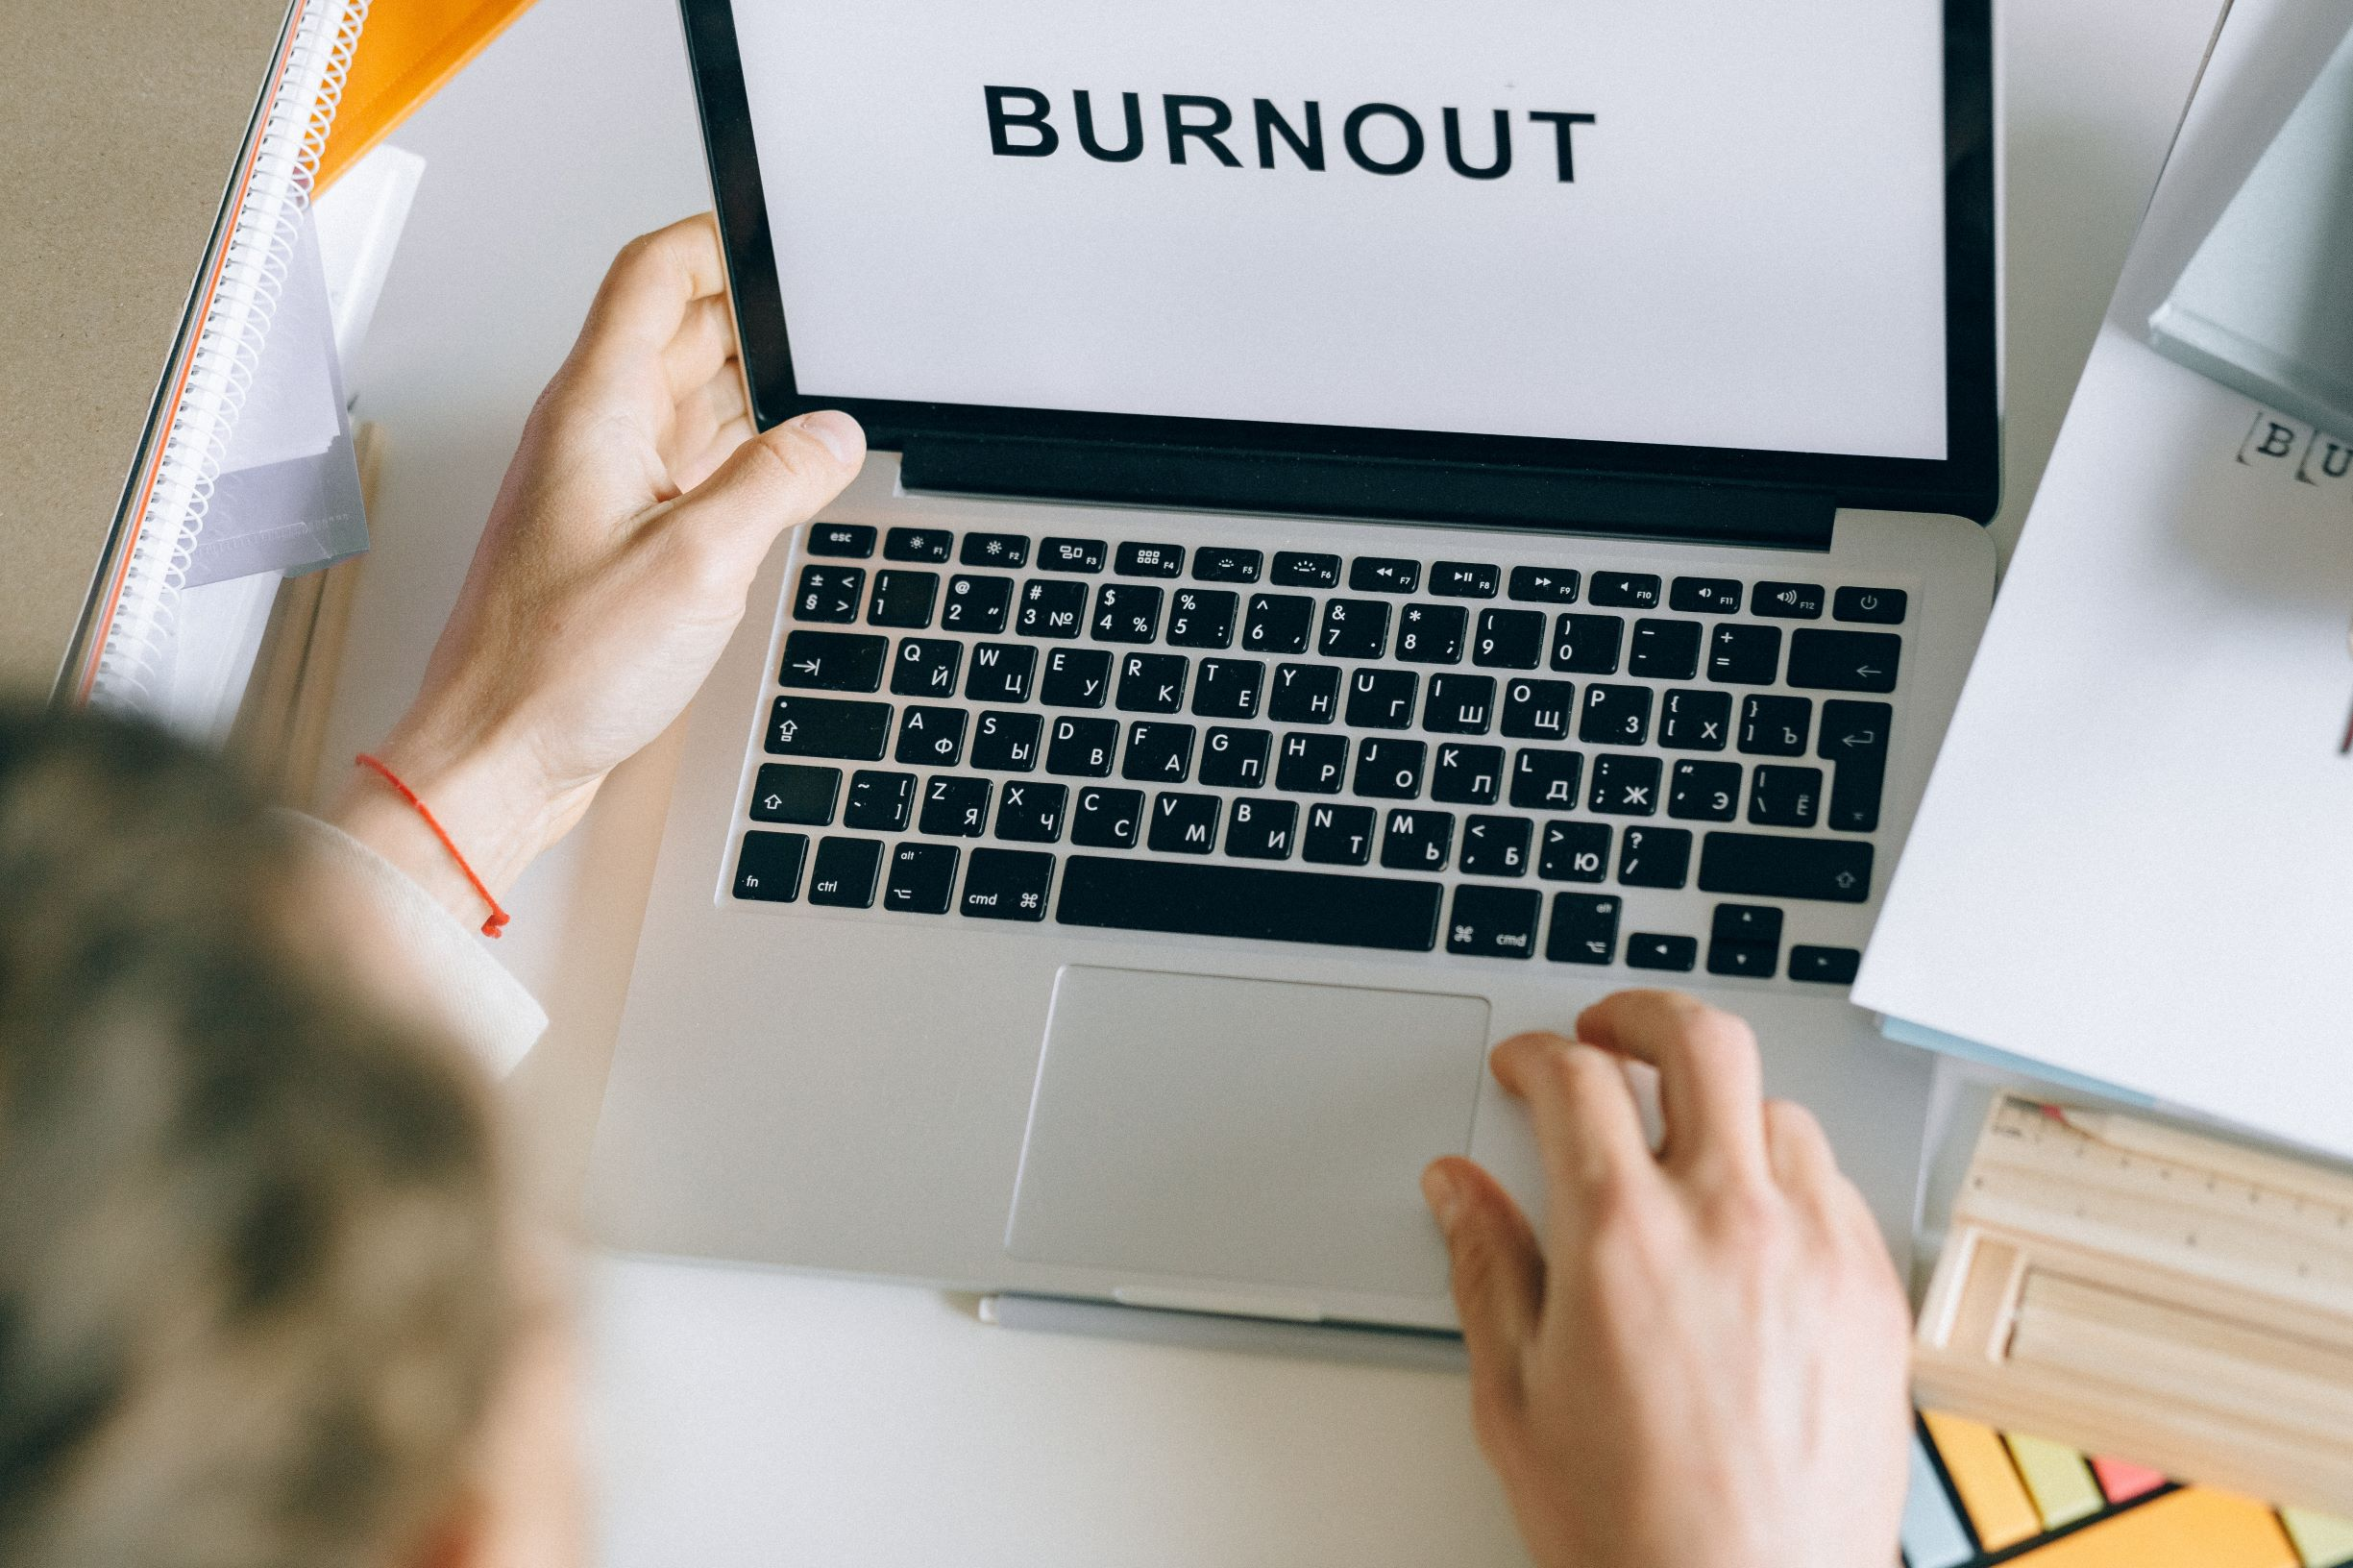 My end of year report? B for burnout!